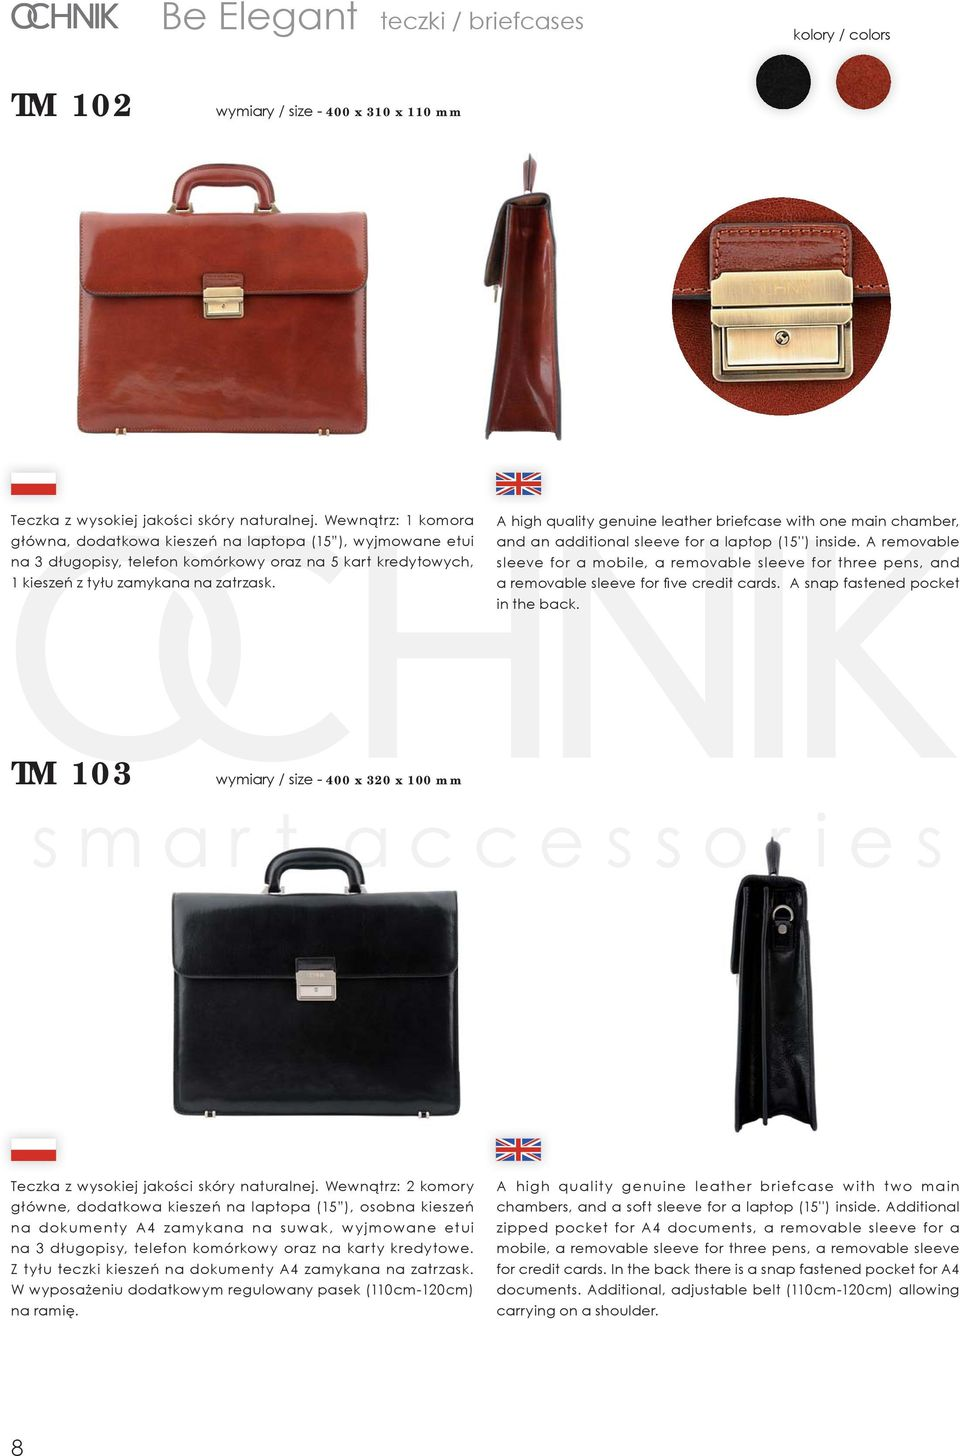 A high quality genuine leather briefcase with one main chamber, and an additional sleeve for a laptop (15'') inside.